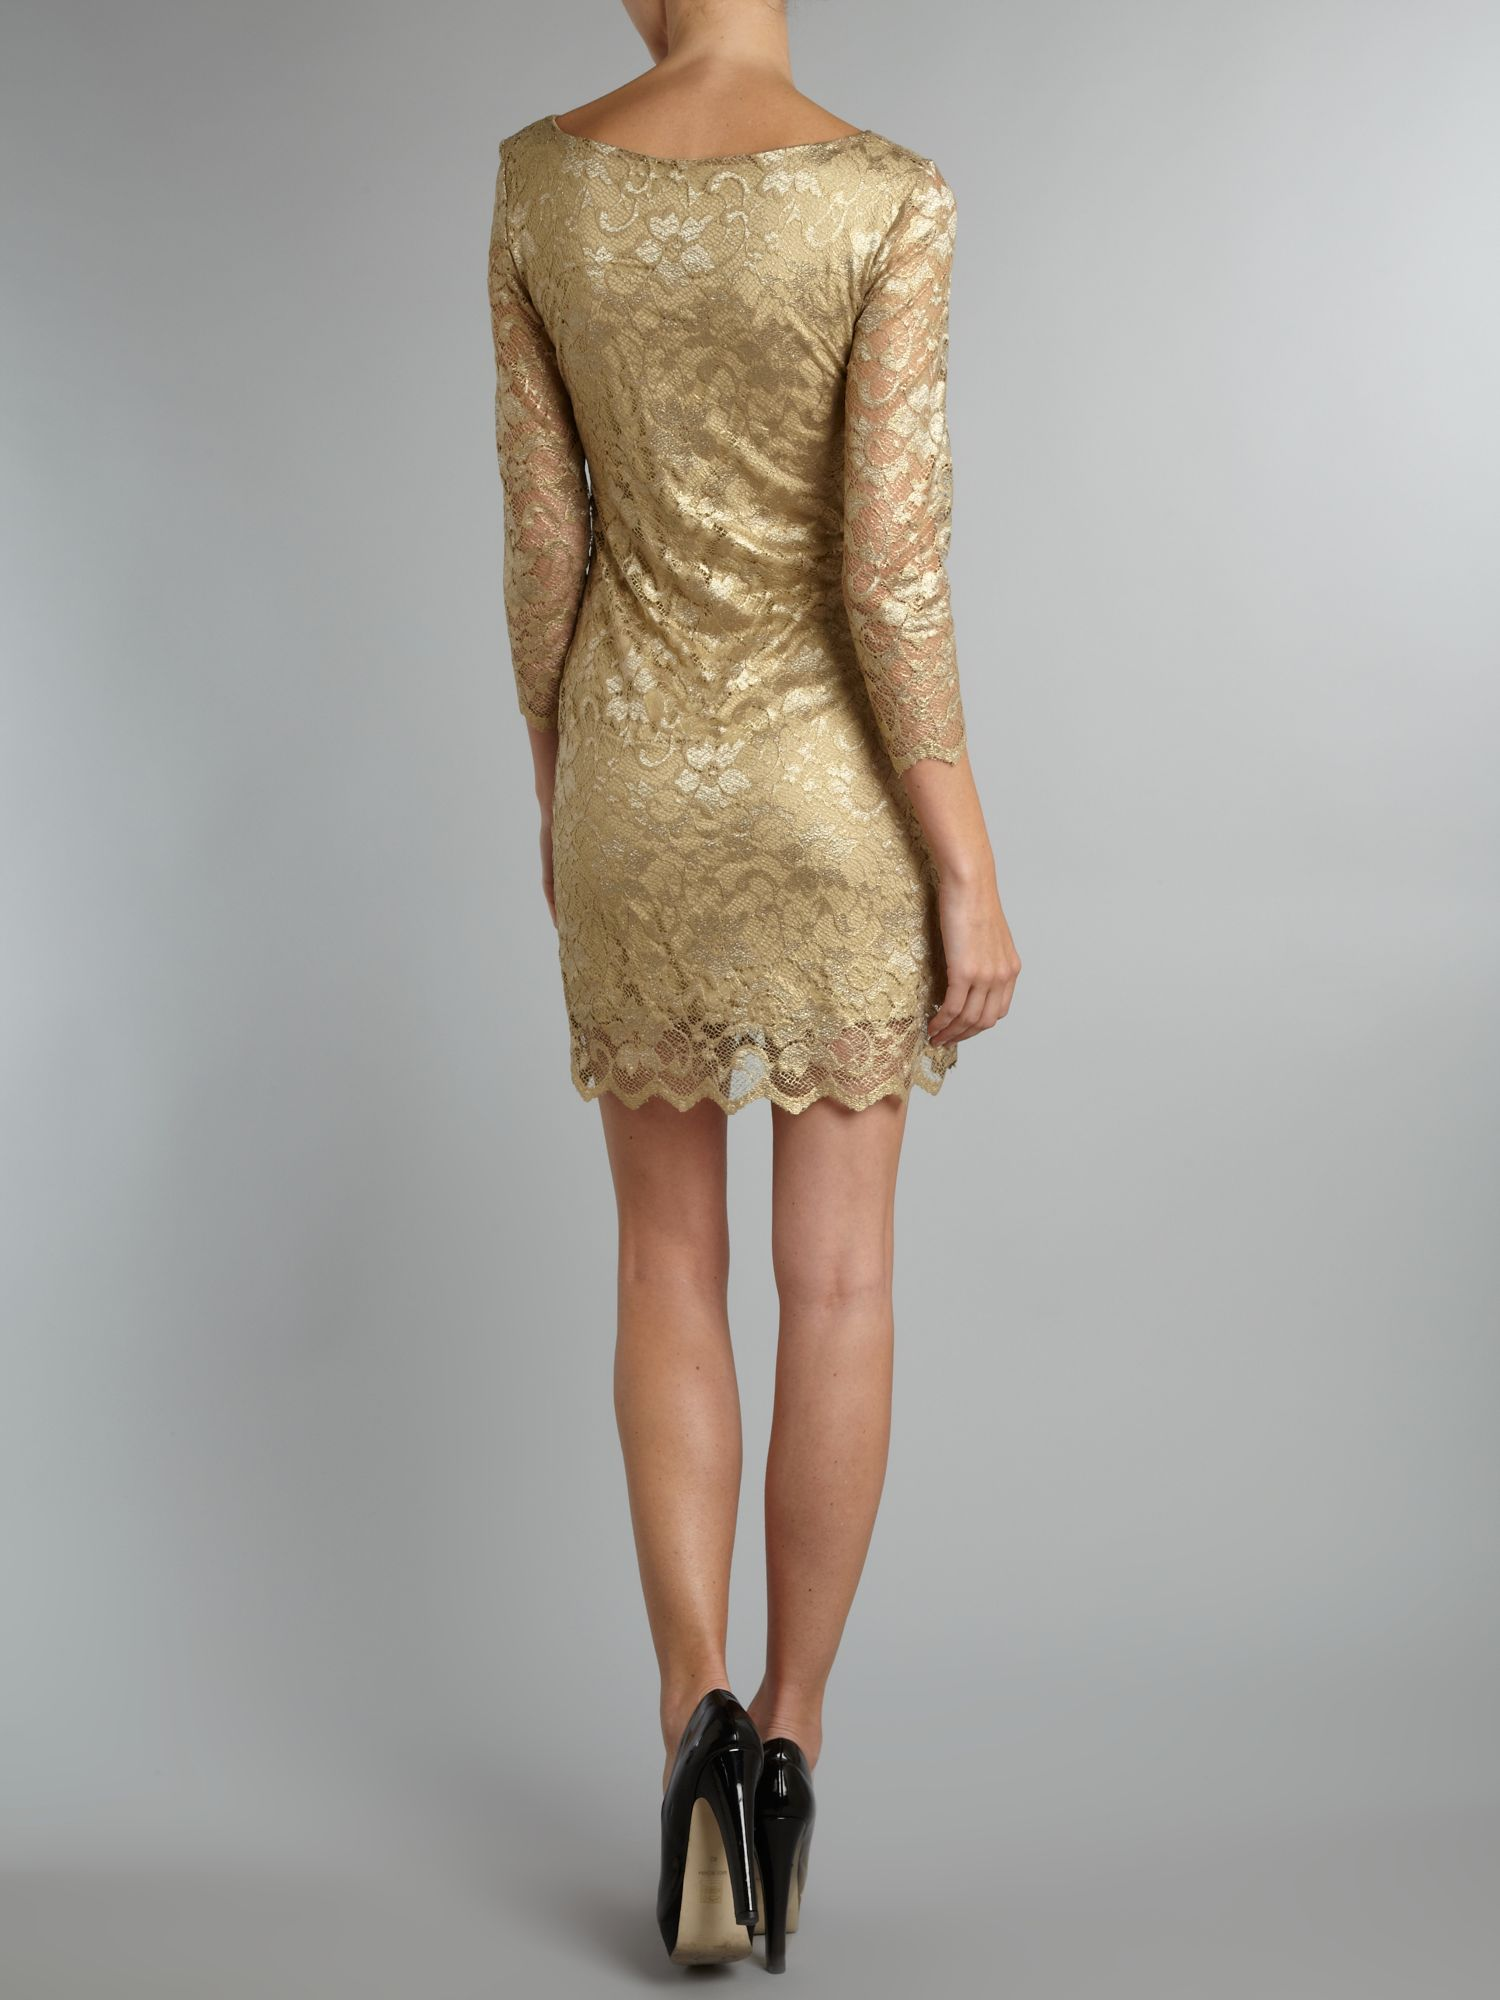 Long sleeve metallic lace dress